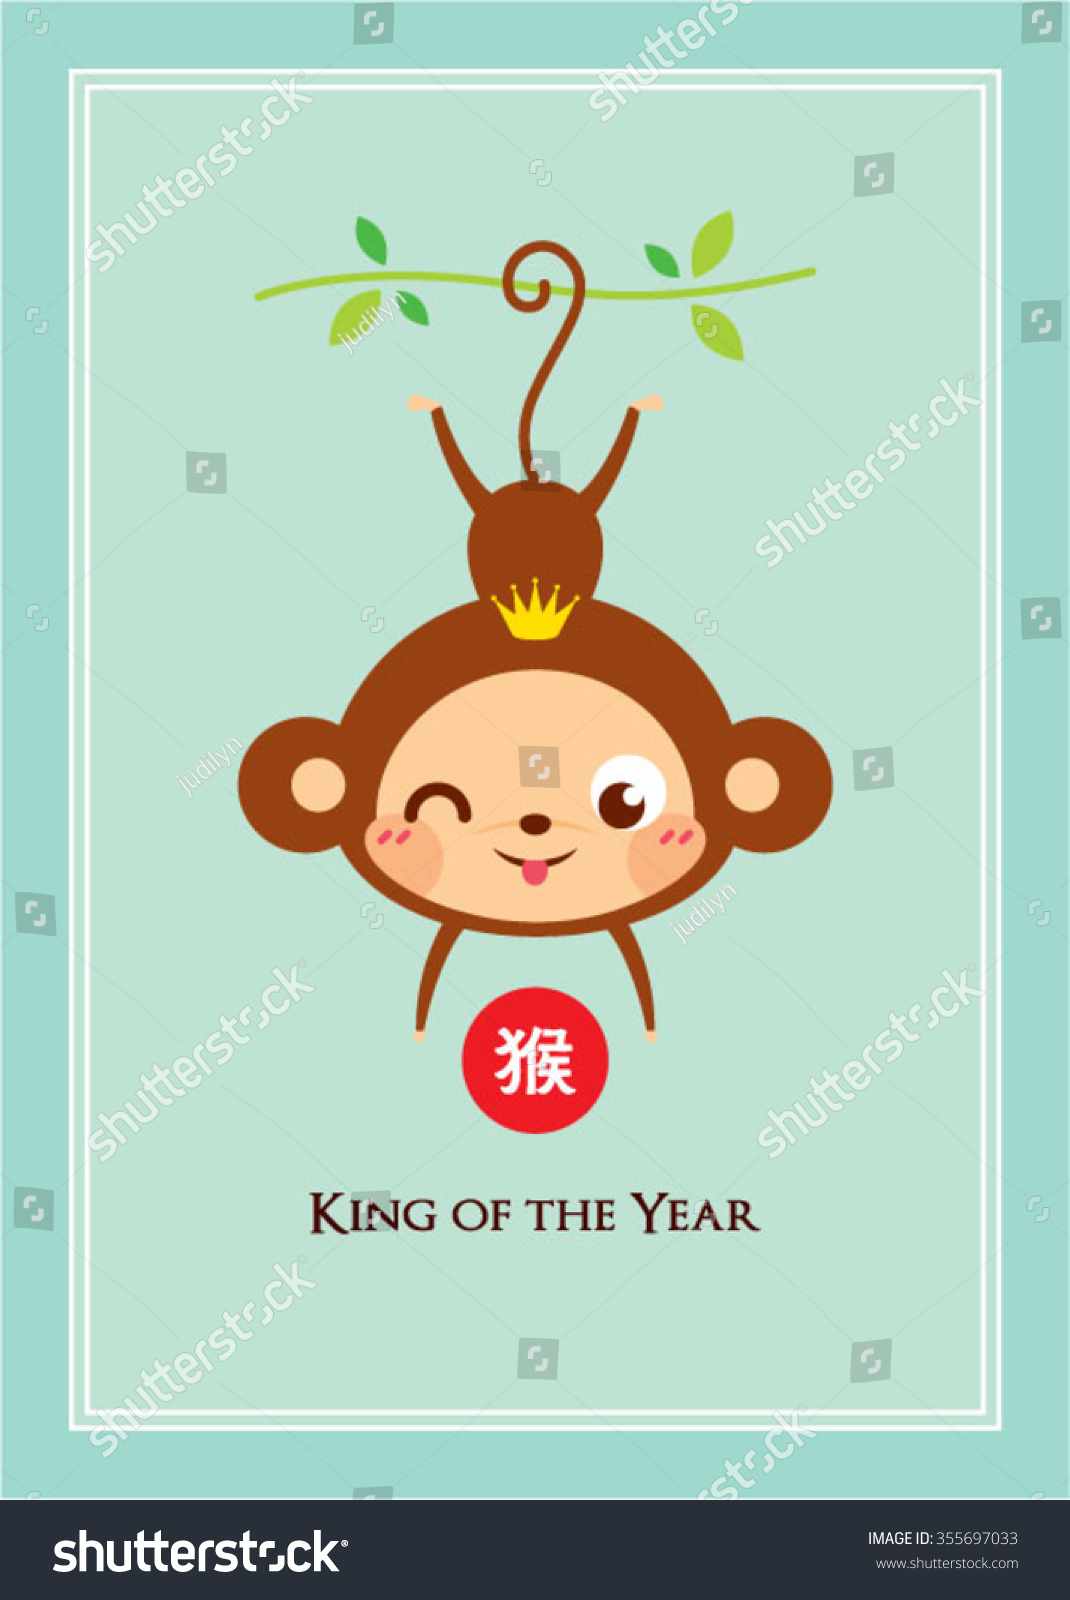 Cute monkey king 2016 year greeting stock vector 355697033 for Wildlife christmas cards 2016